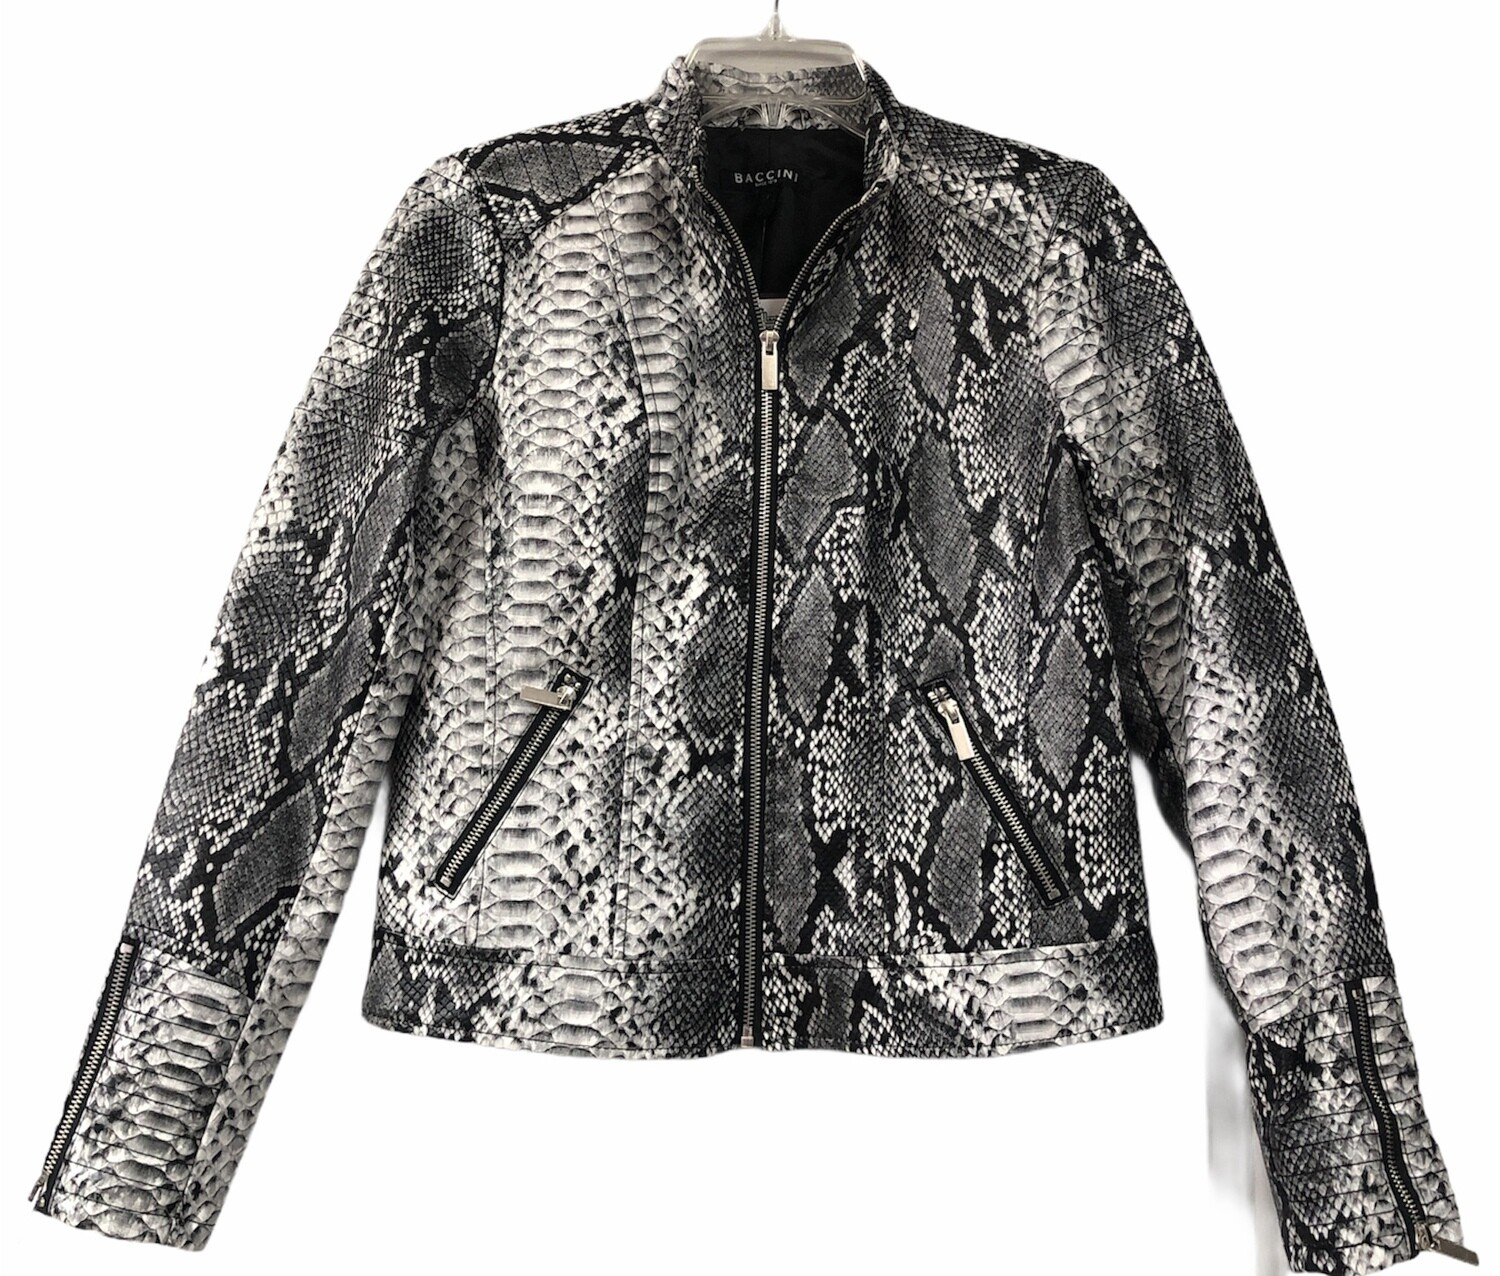 New BACCINI Faux Leather Reptile Moto Jacket Medium